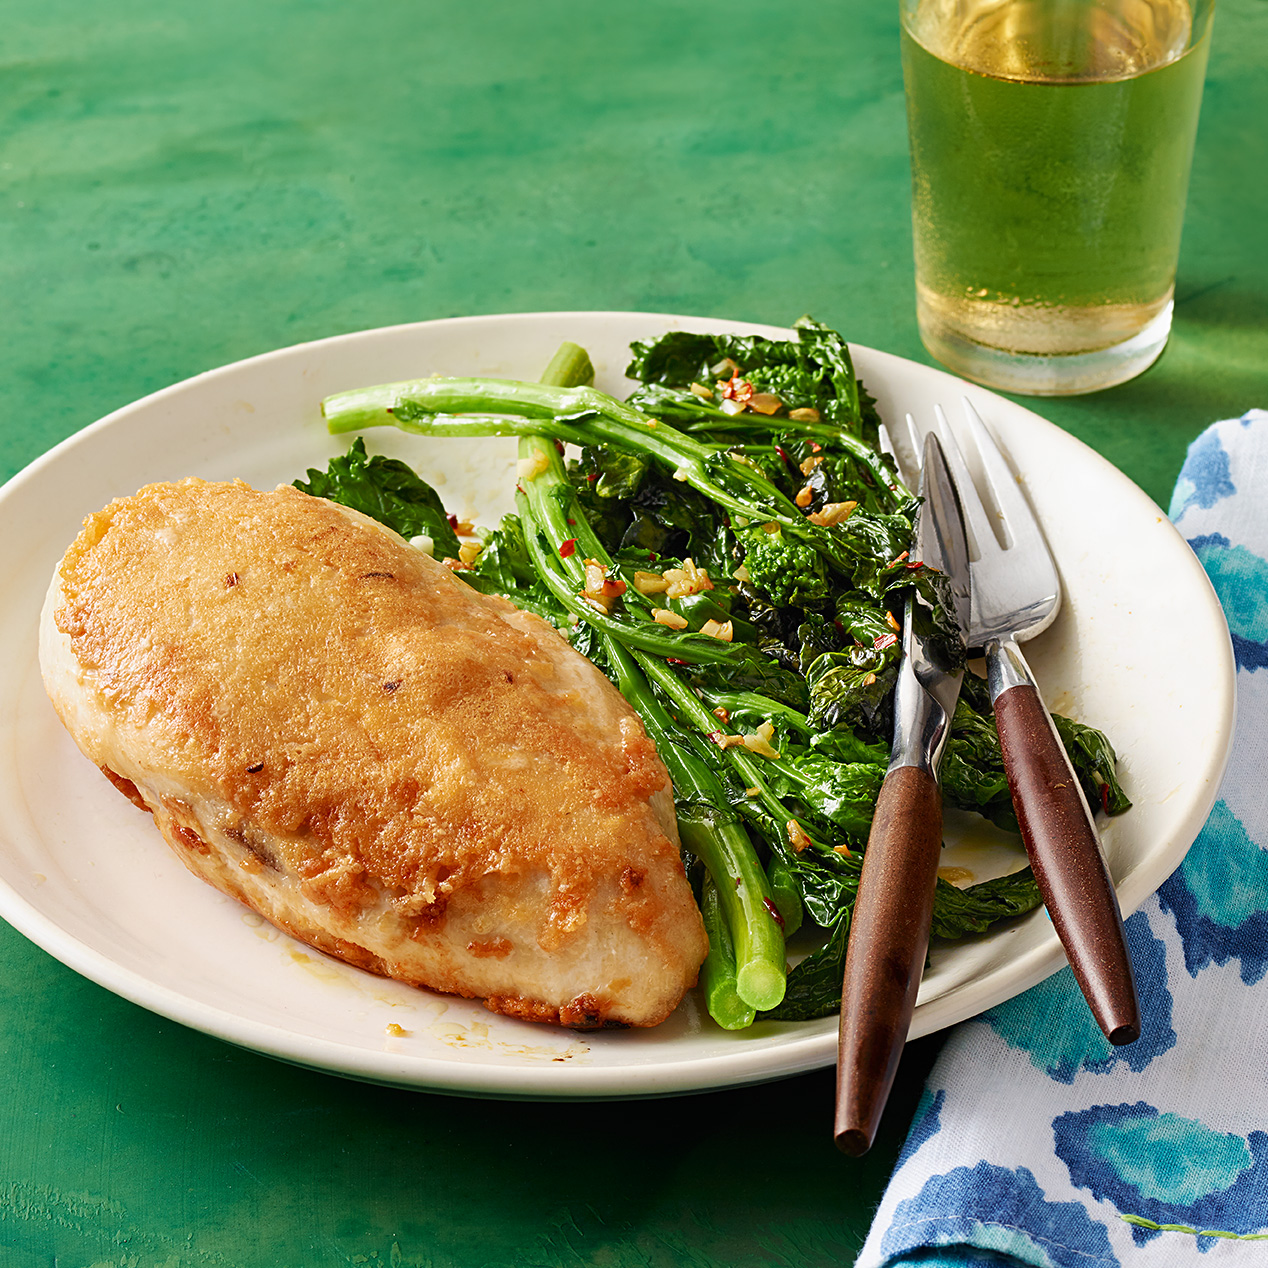 Parm-Crusted Chicken with Broccoli Rabe